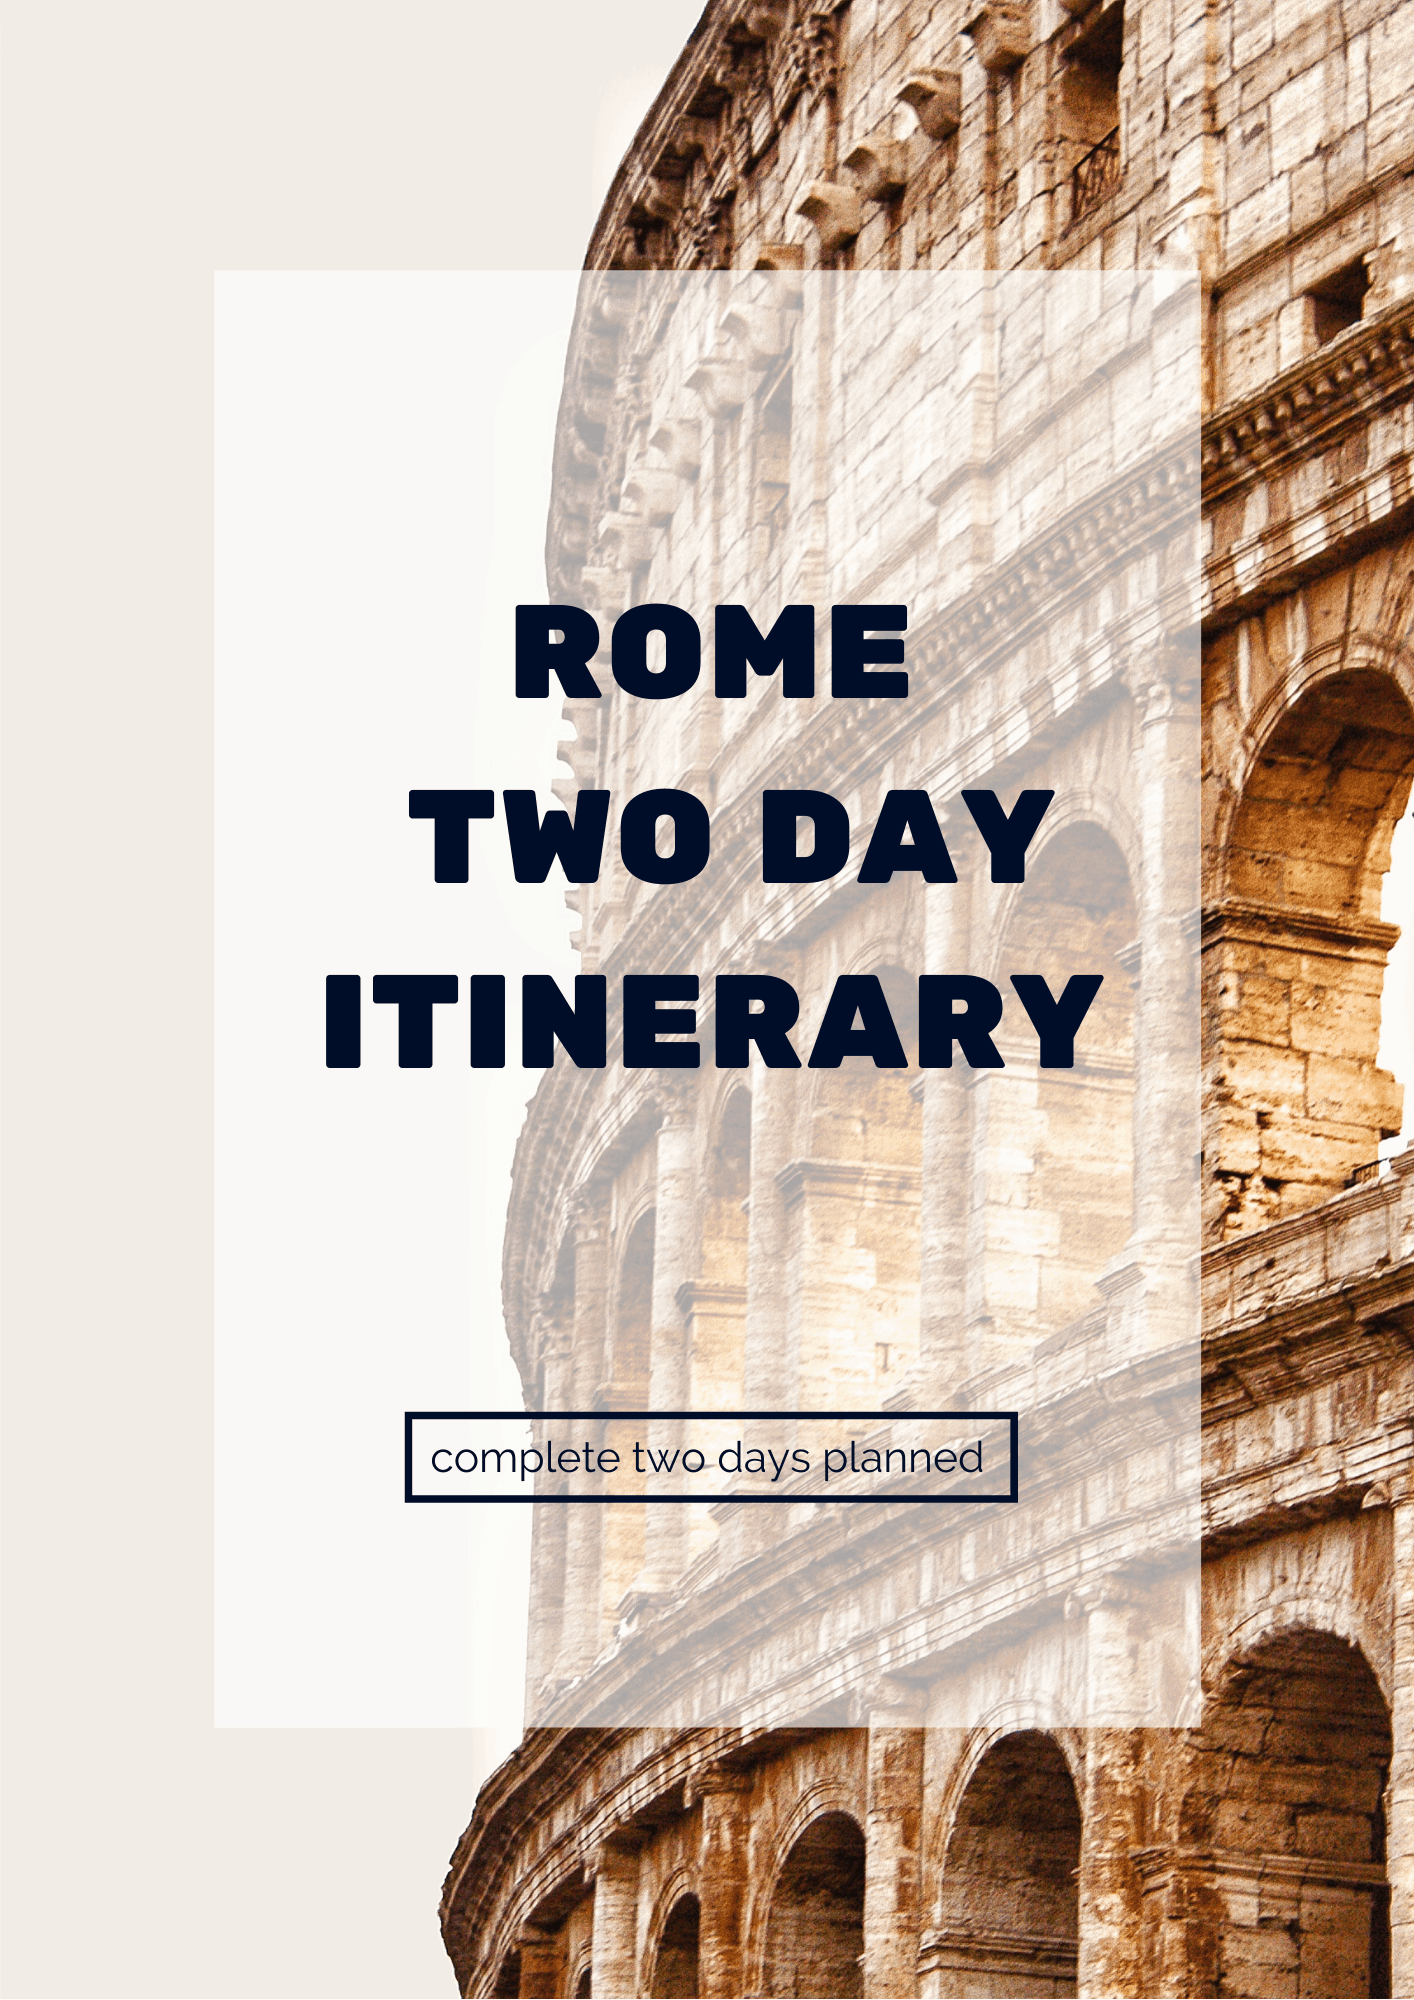 Rome Two Day Itinerary 2019